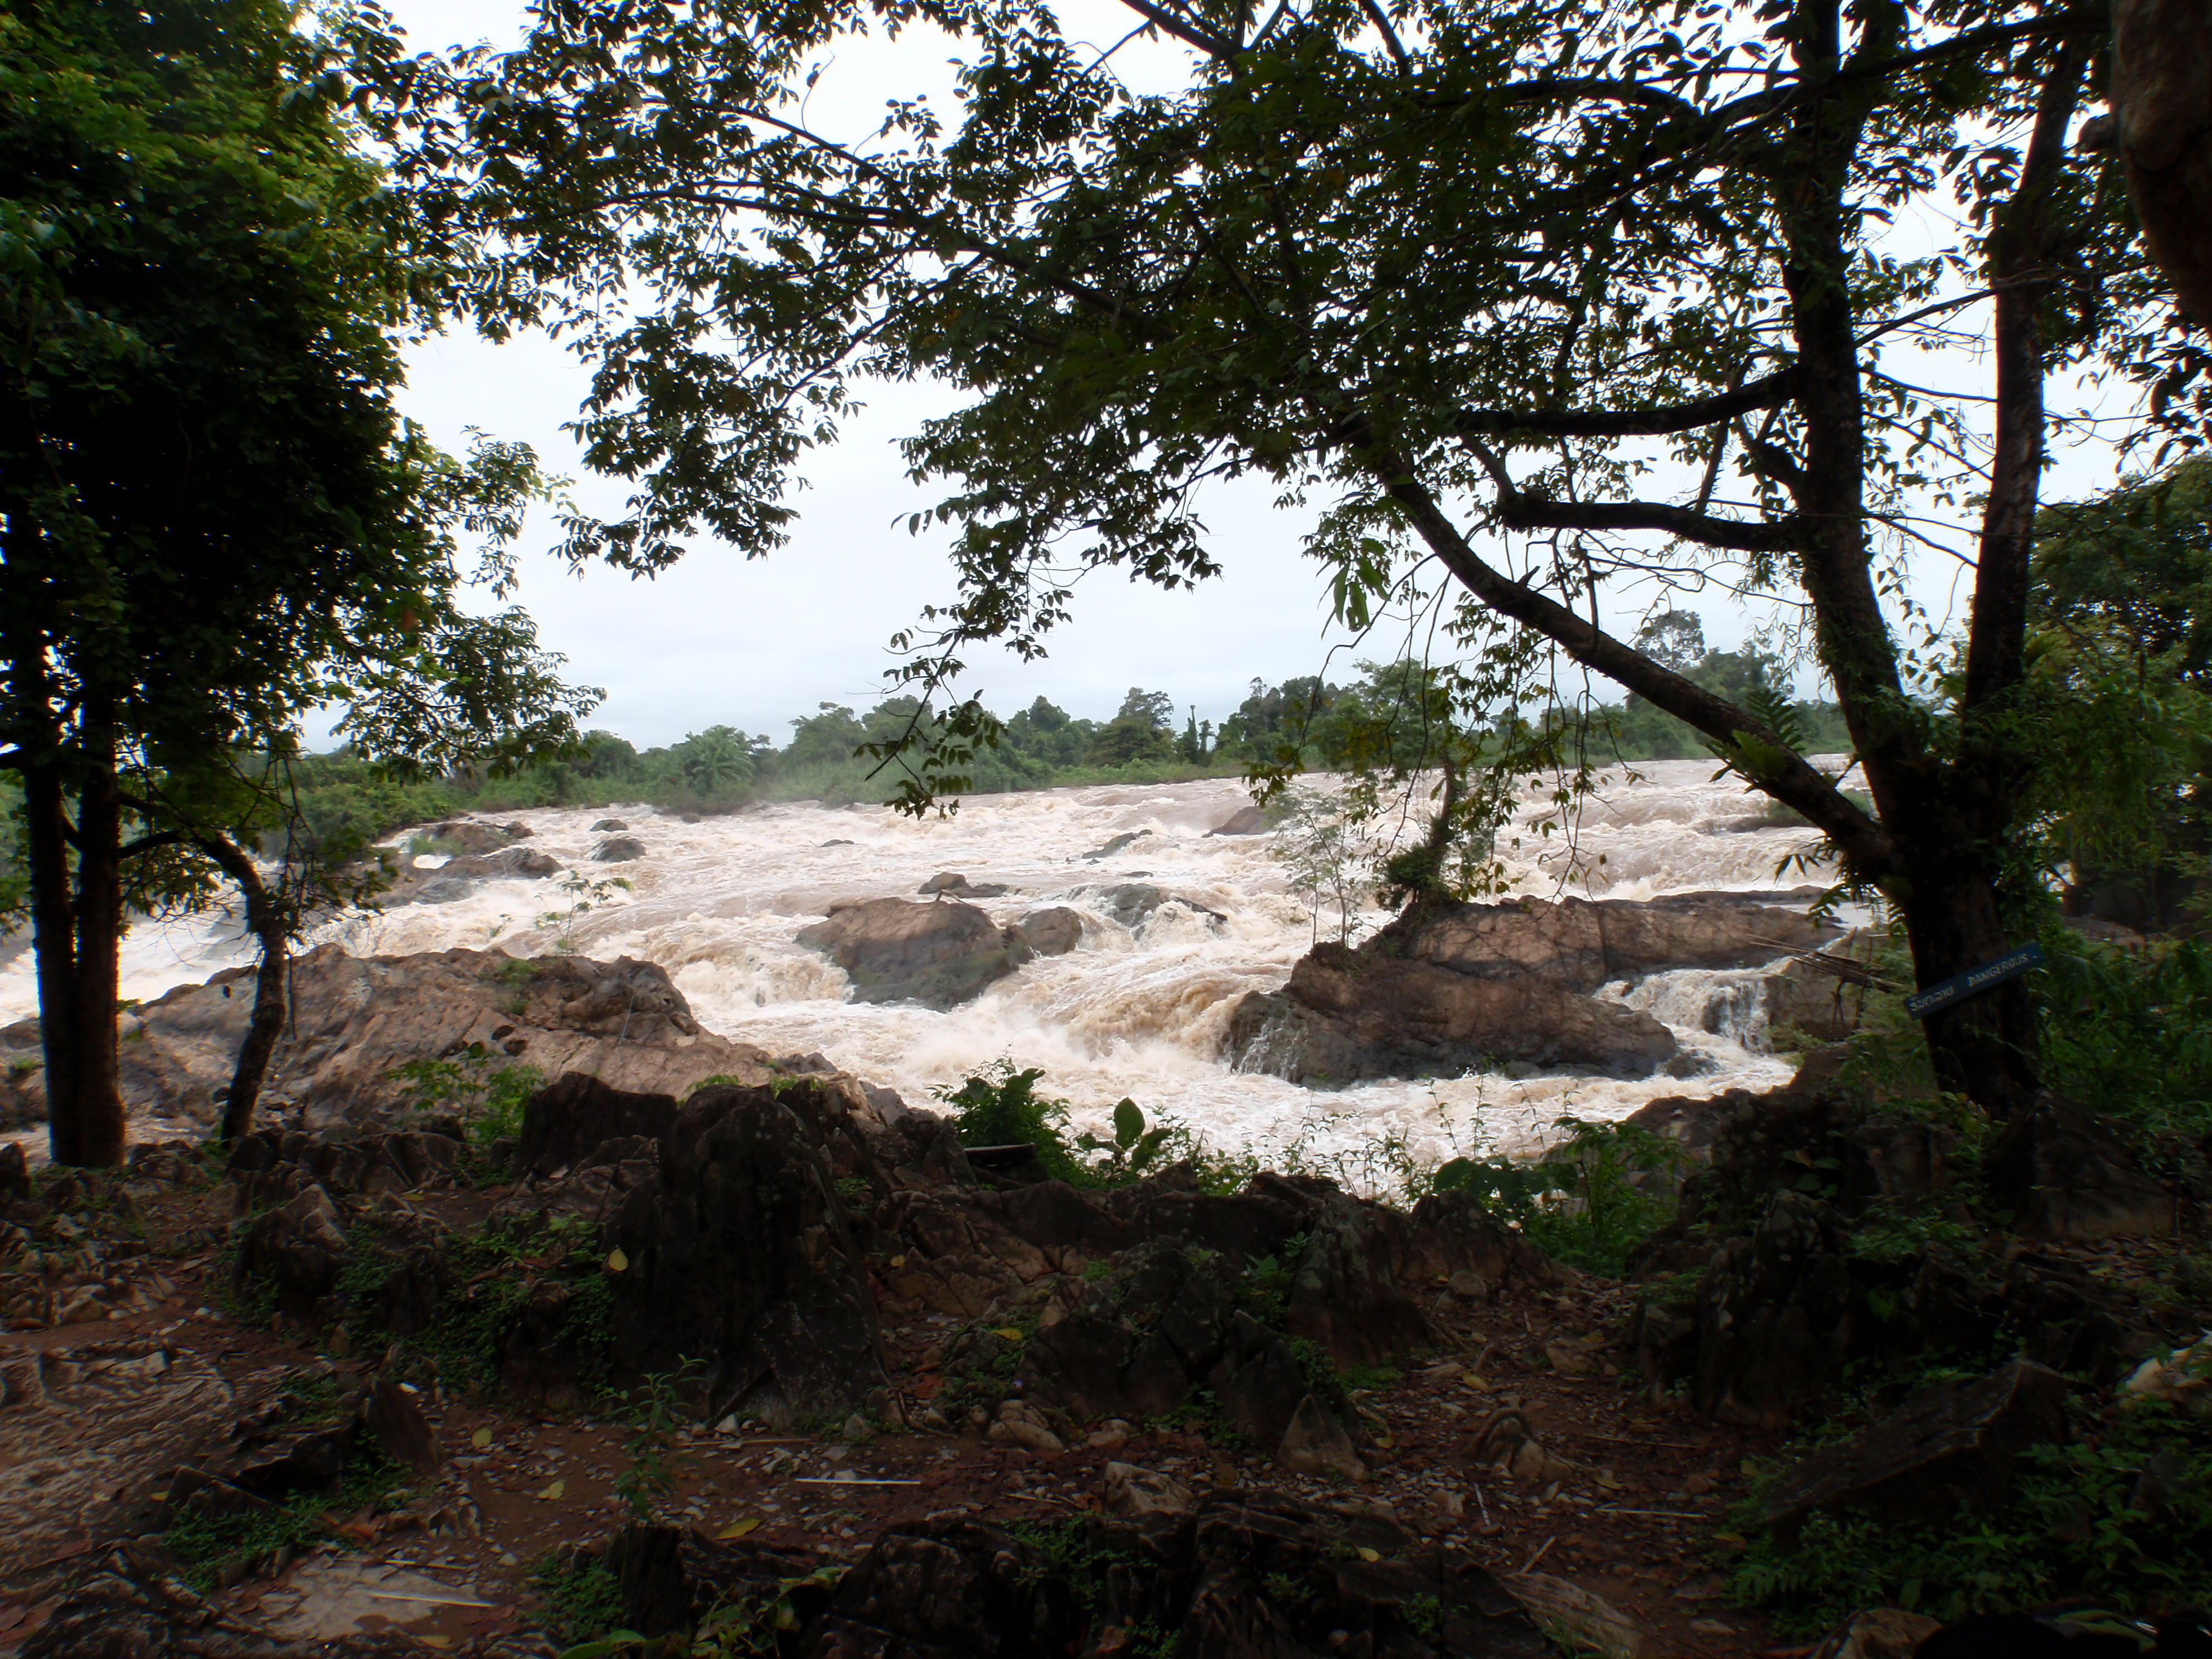 Raging torrent of the waterfall